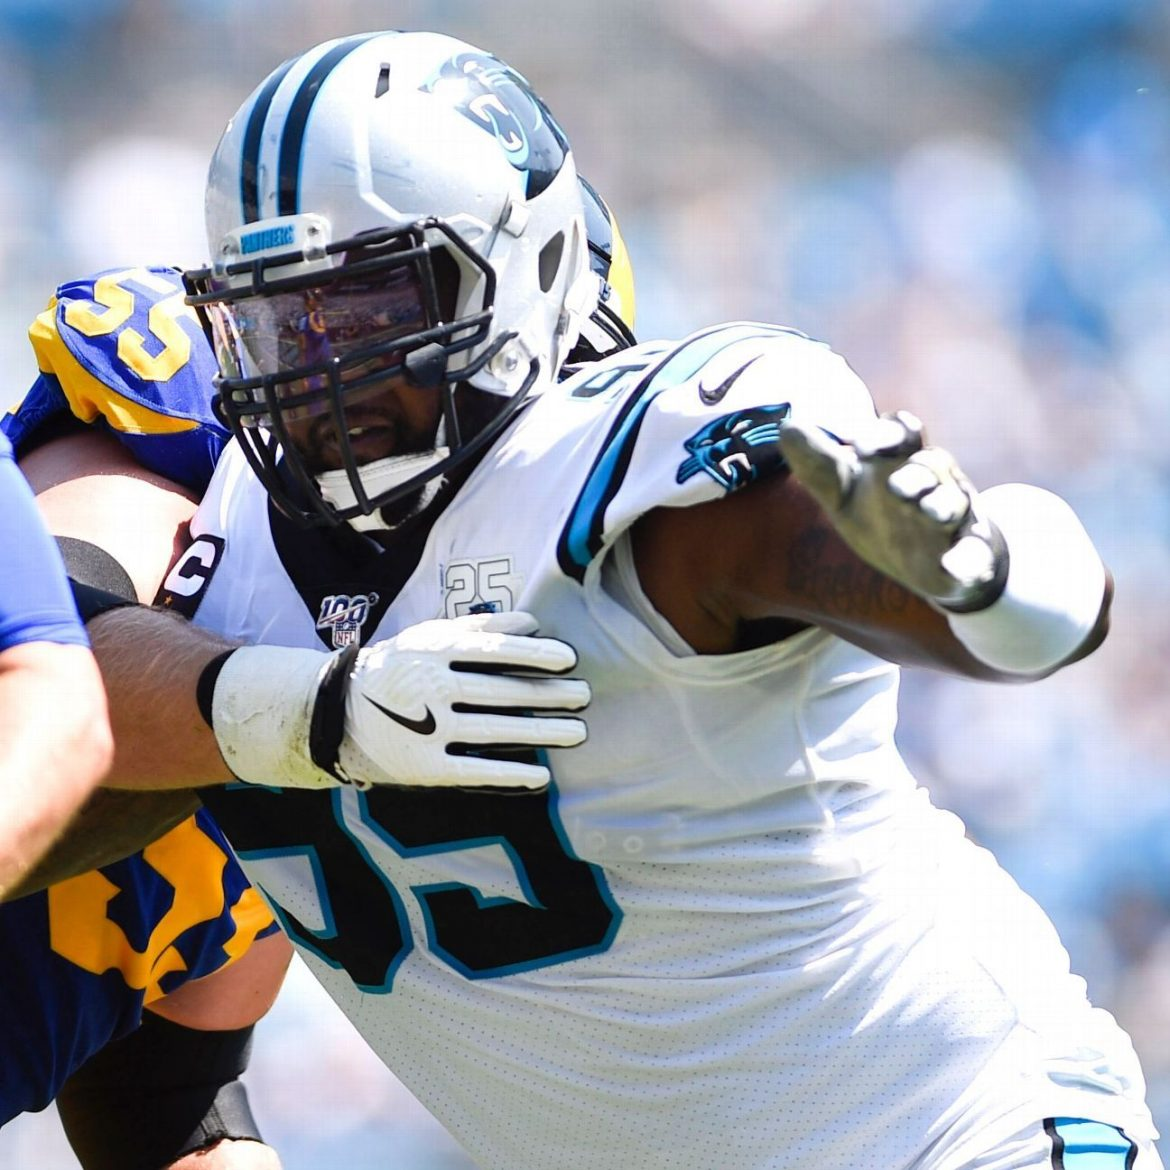 Panthers release 3, increase cap space to $28.5M